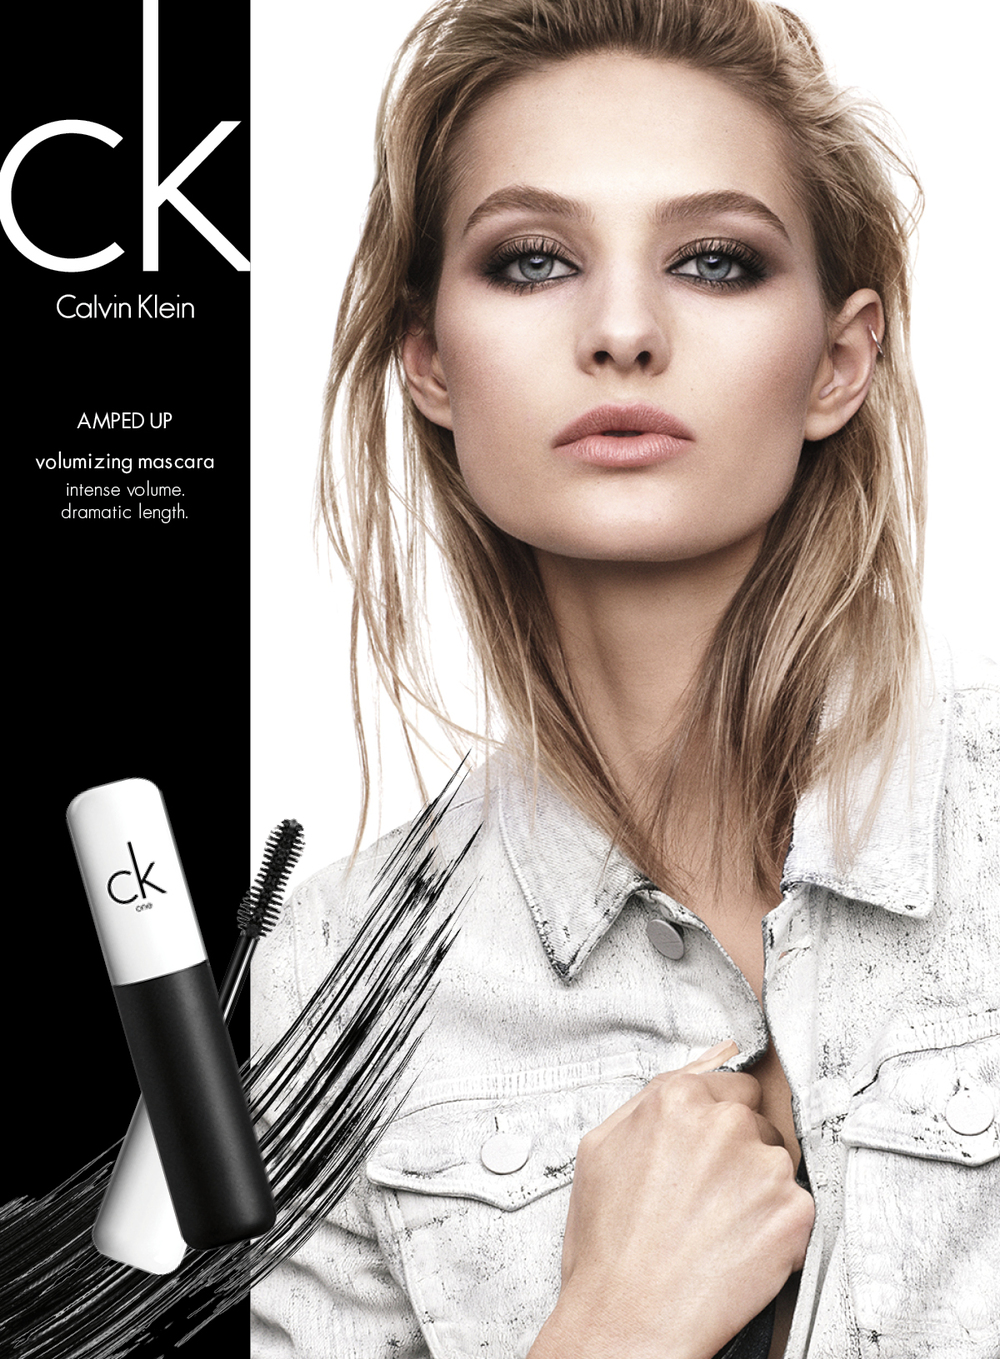 CK COLOR SINGLE PAGE 8%22X10.875%22_VOLUMIZING MASCARA.jpg